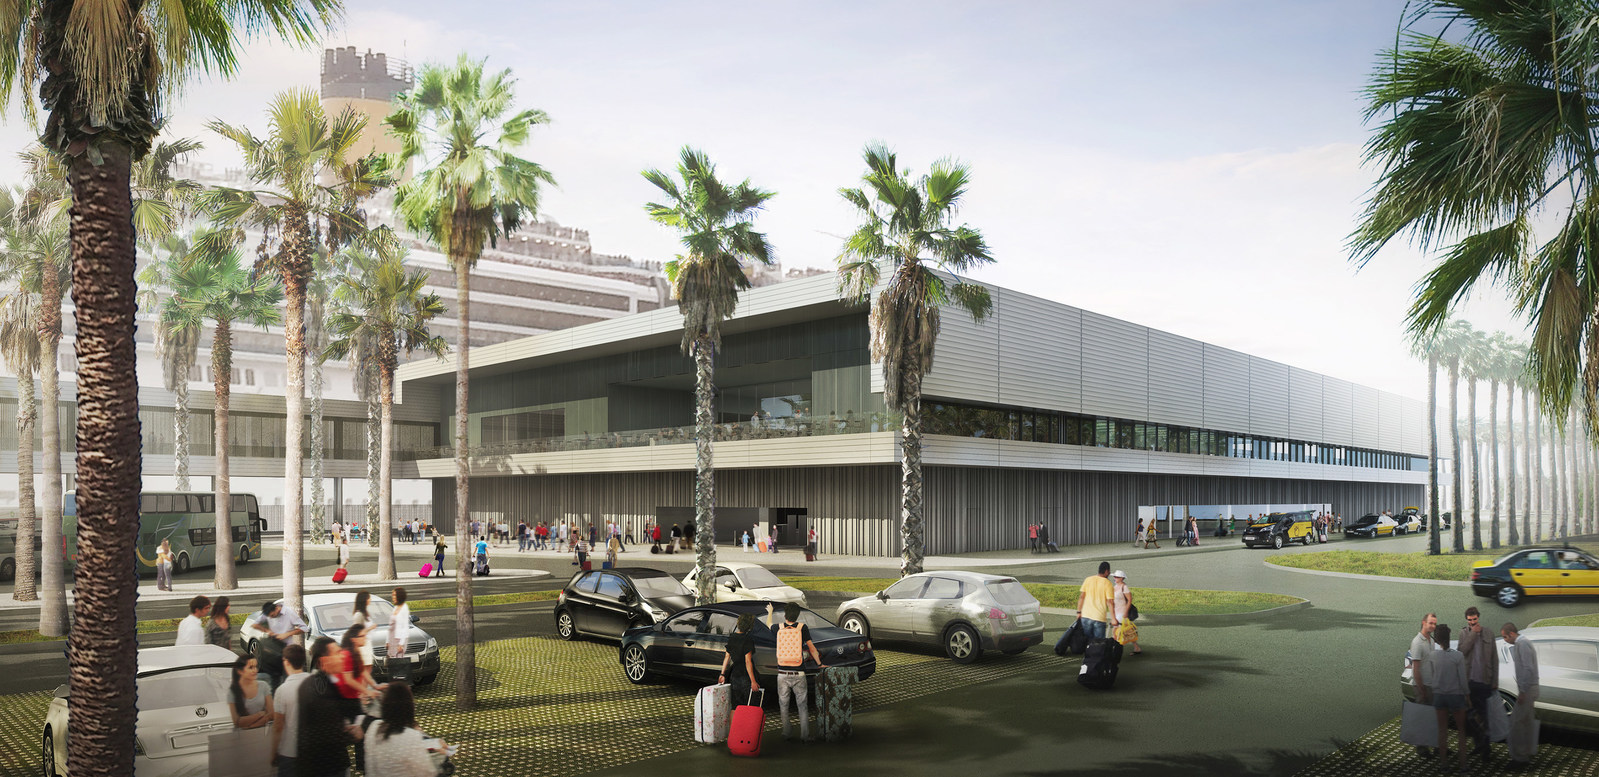 Αποτέλεσμα εικόνας για Carnival Corporation unveils artistic renderings for second cruise terminal at Port of Barcelona